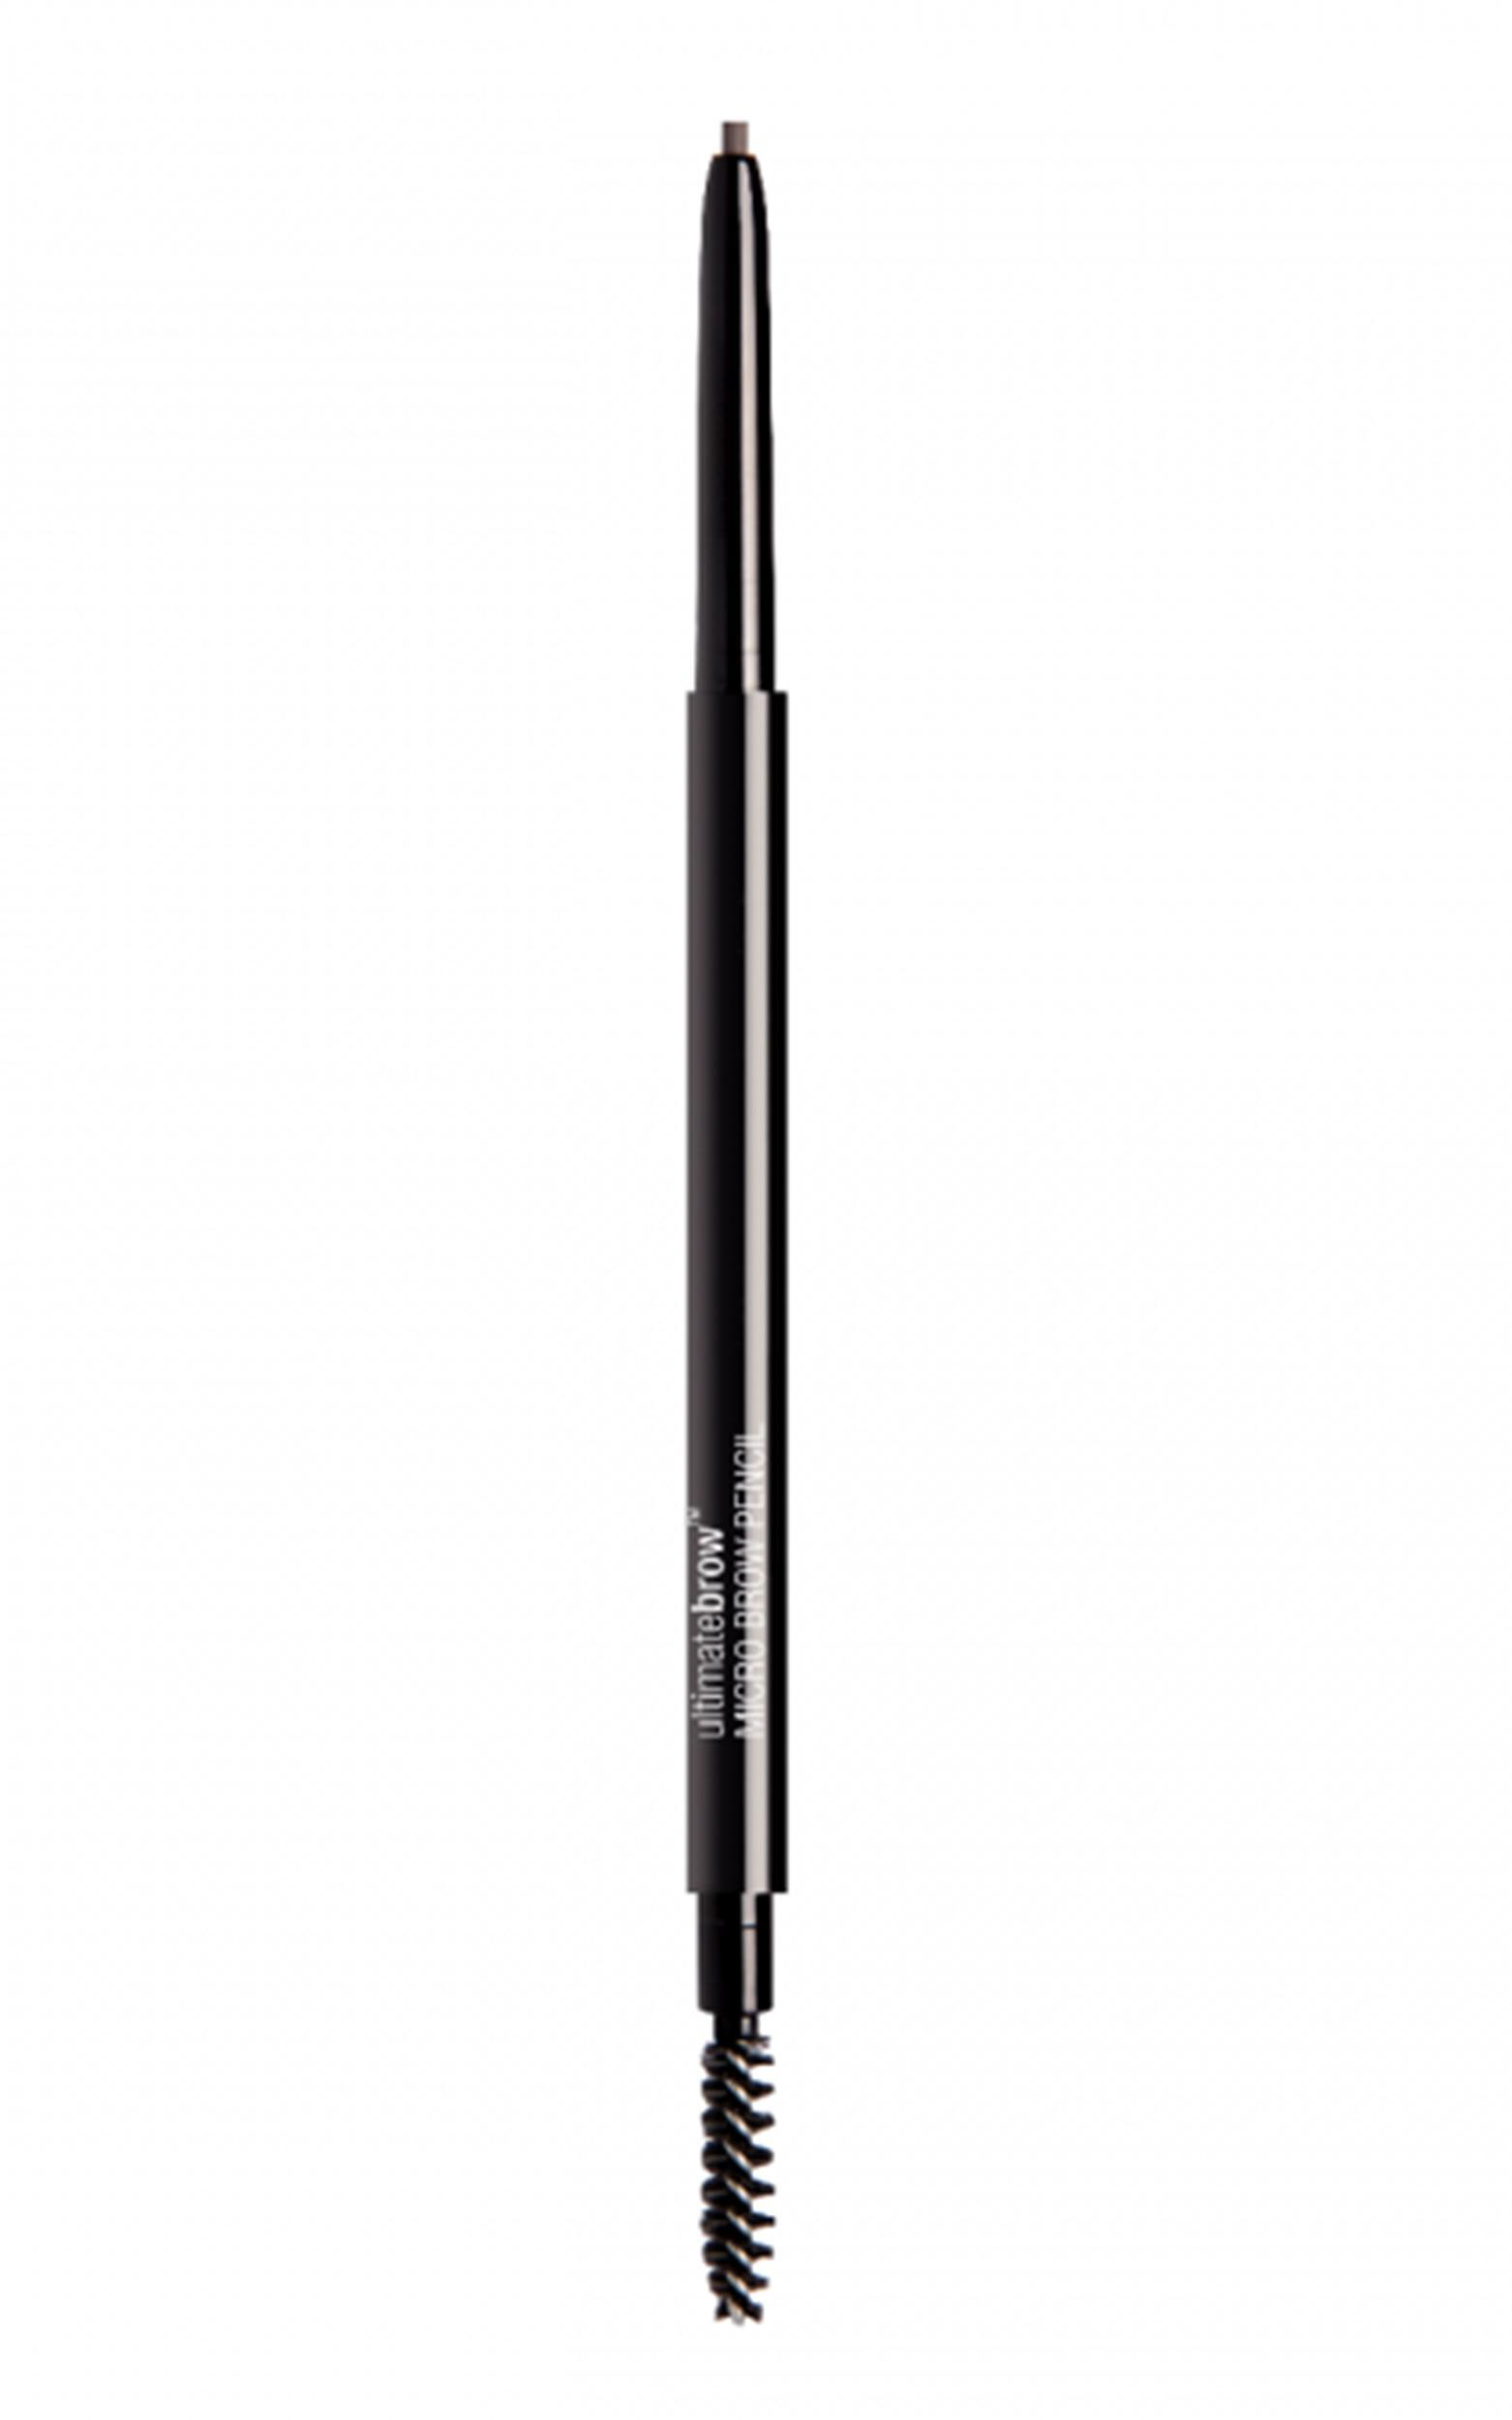 Wet N Wild - Ultimate Brow Micro Brow Pencil In Soft Brown , Brown, hi-res image number null